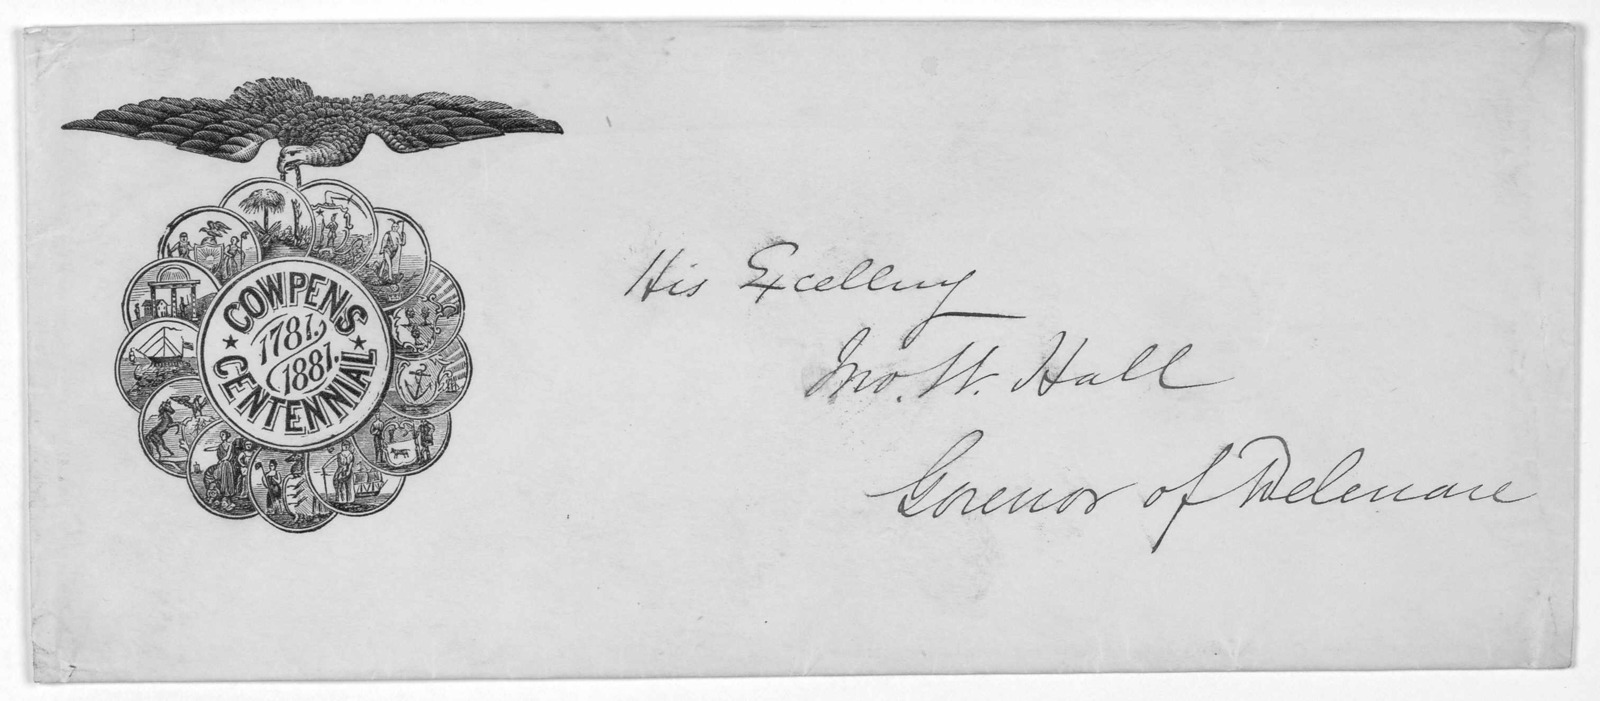 [Circular letter seeking assistance for a proposed column to commemorate the centennial of the victory at Cowpens. Addressed to the Governors of certain States, with the name of John W. Hall, Governor of Delaware, supplied in manuscript] Charles